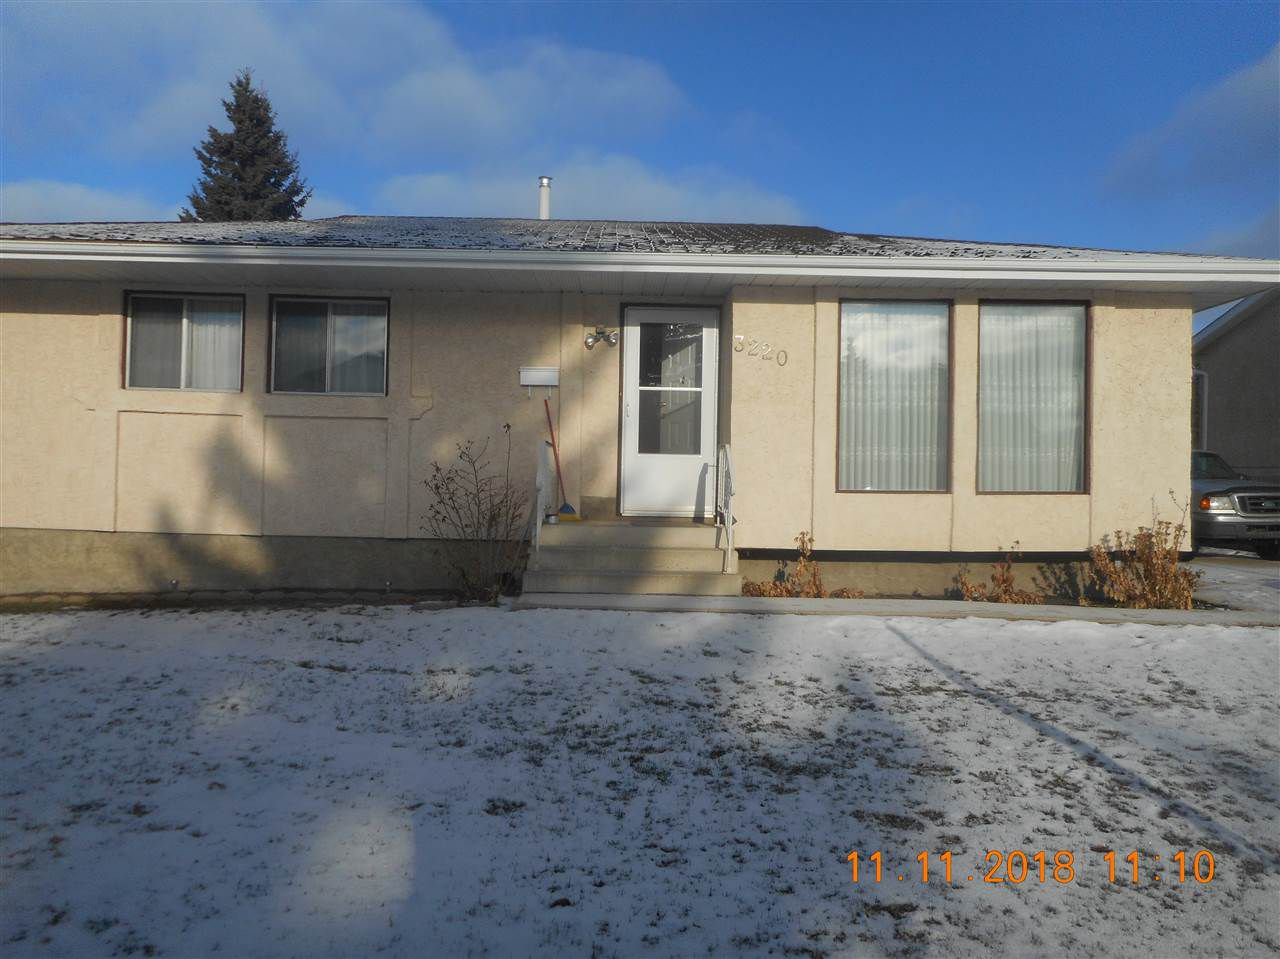 Main Photo: 3220 138 Avenue in Edmonton: Zone 35 House for sale : MLS®# E4135728